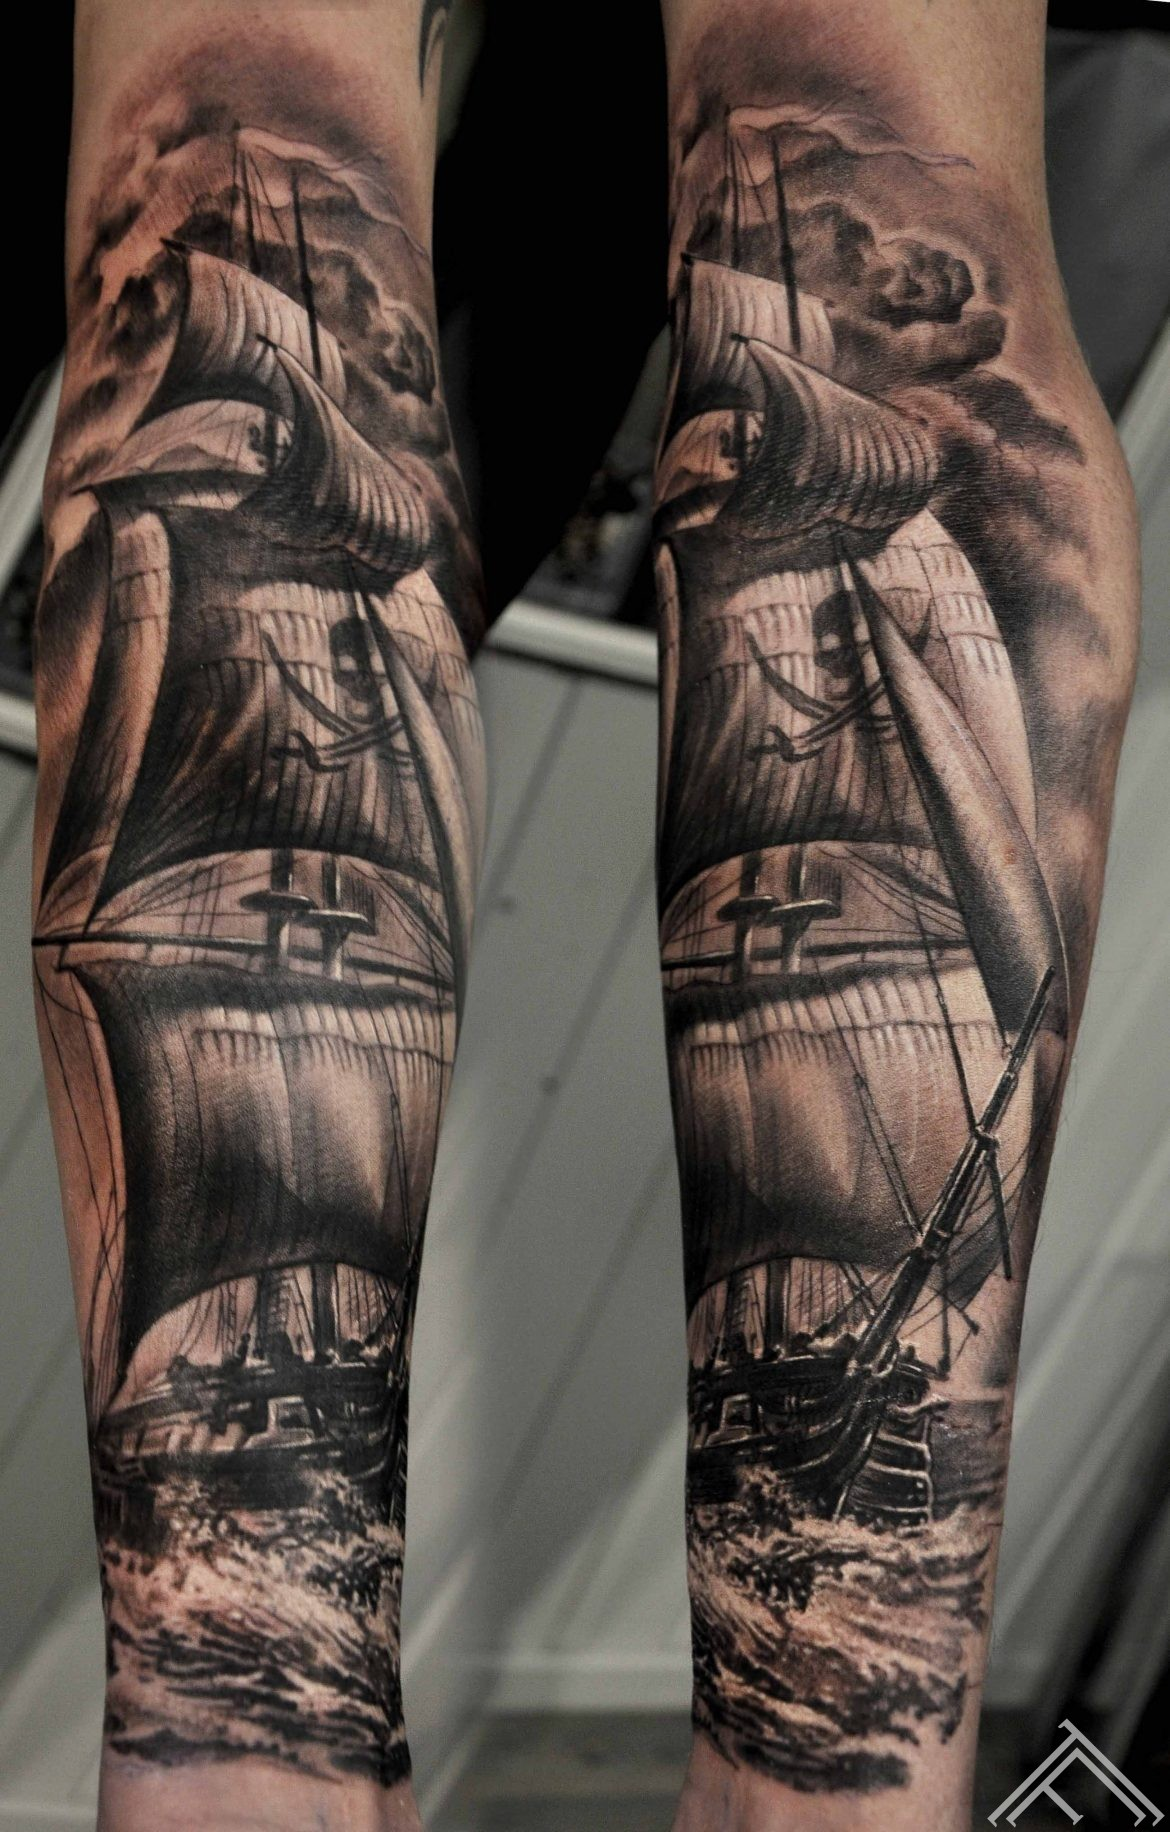 sailing-pirate-ship-tattoo-tattoofrequency-marispavlo